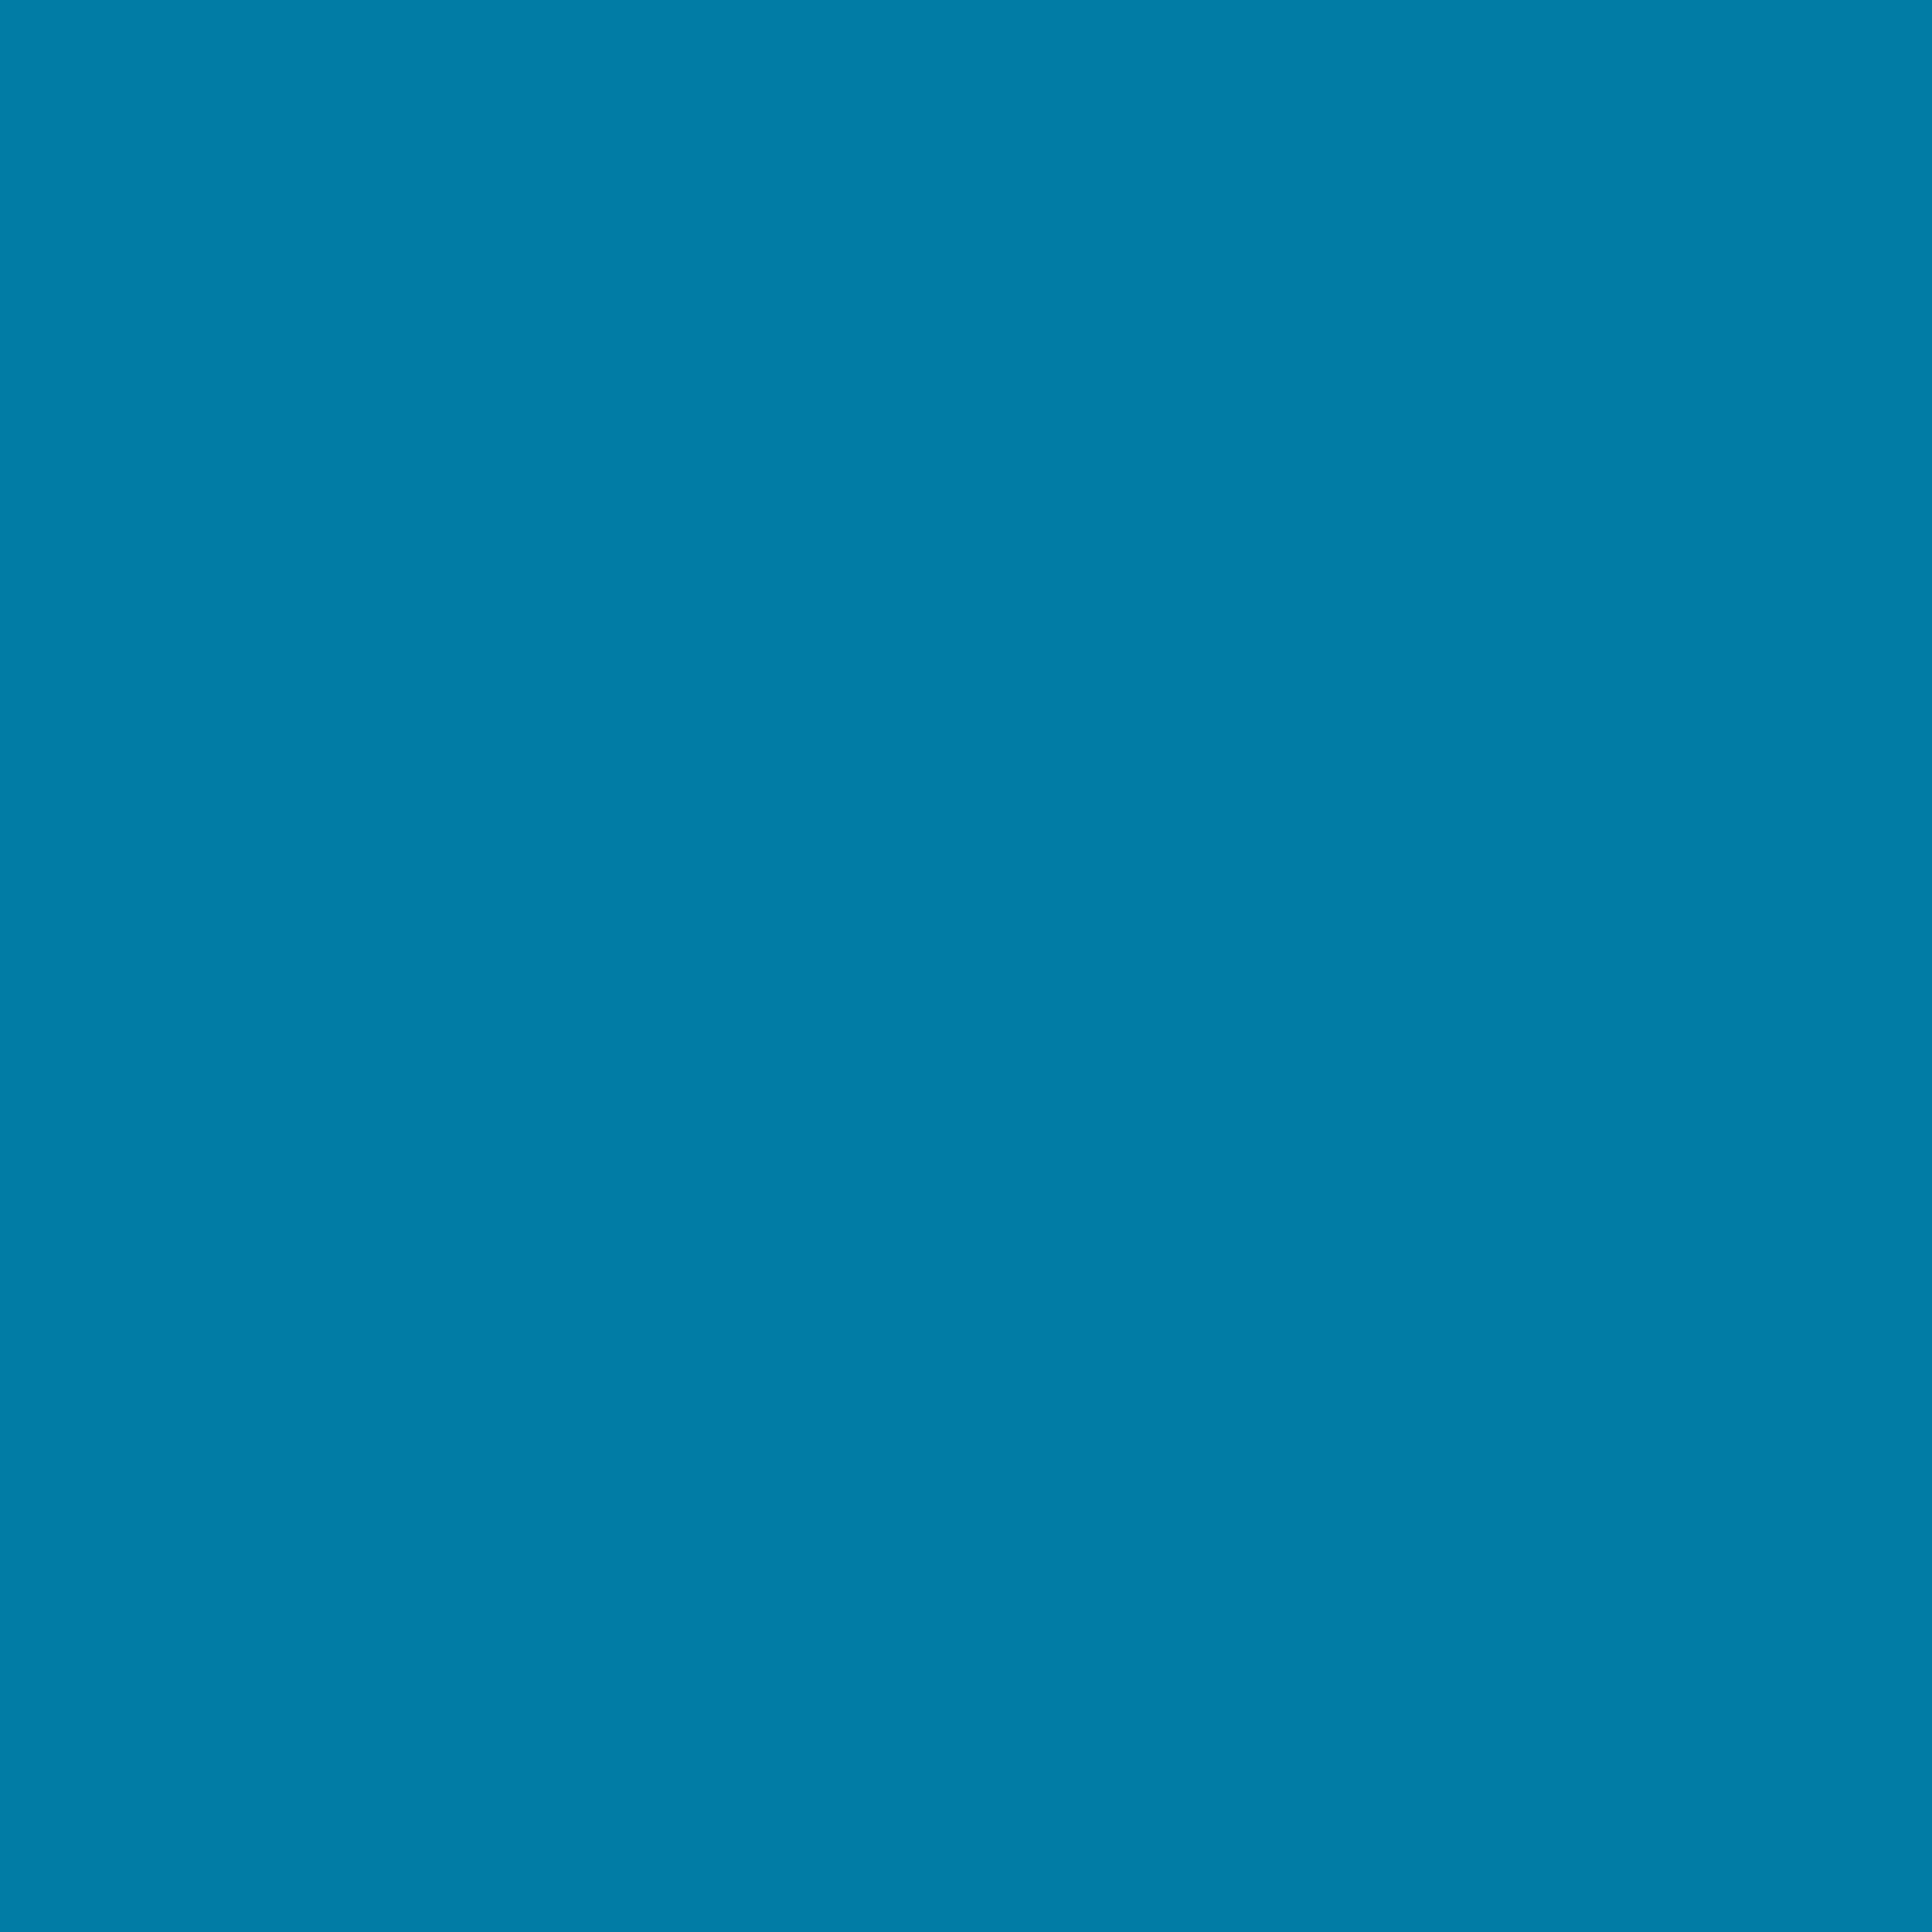 2732x2732 Cerulean Solid Color Background